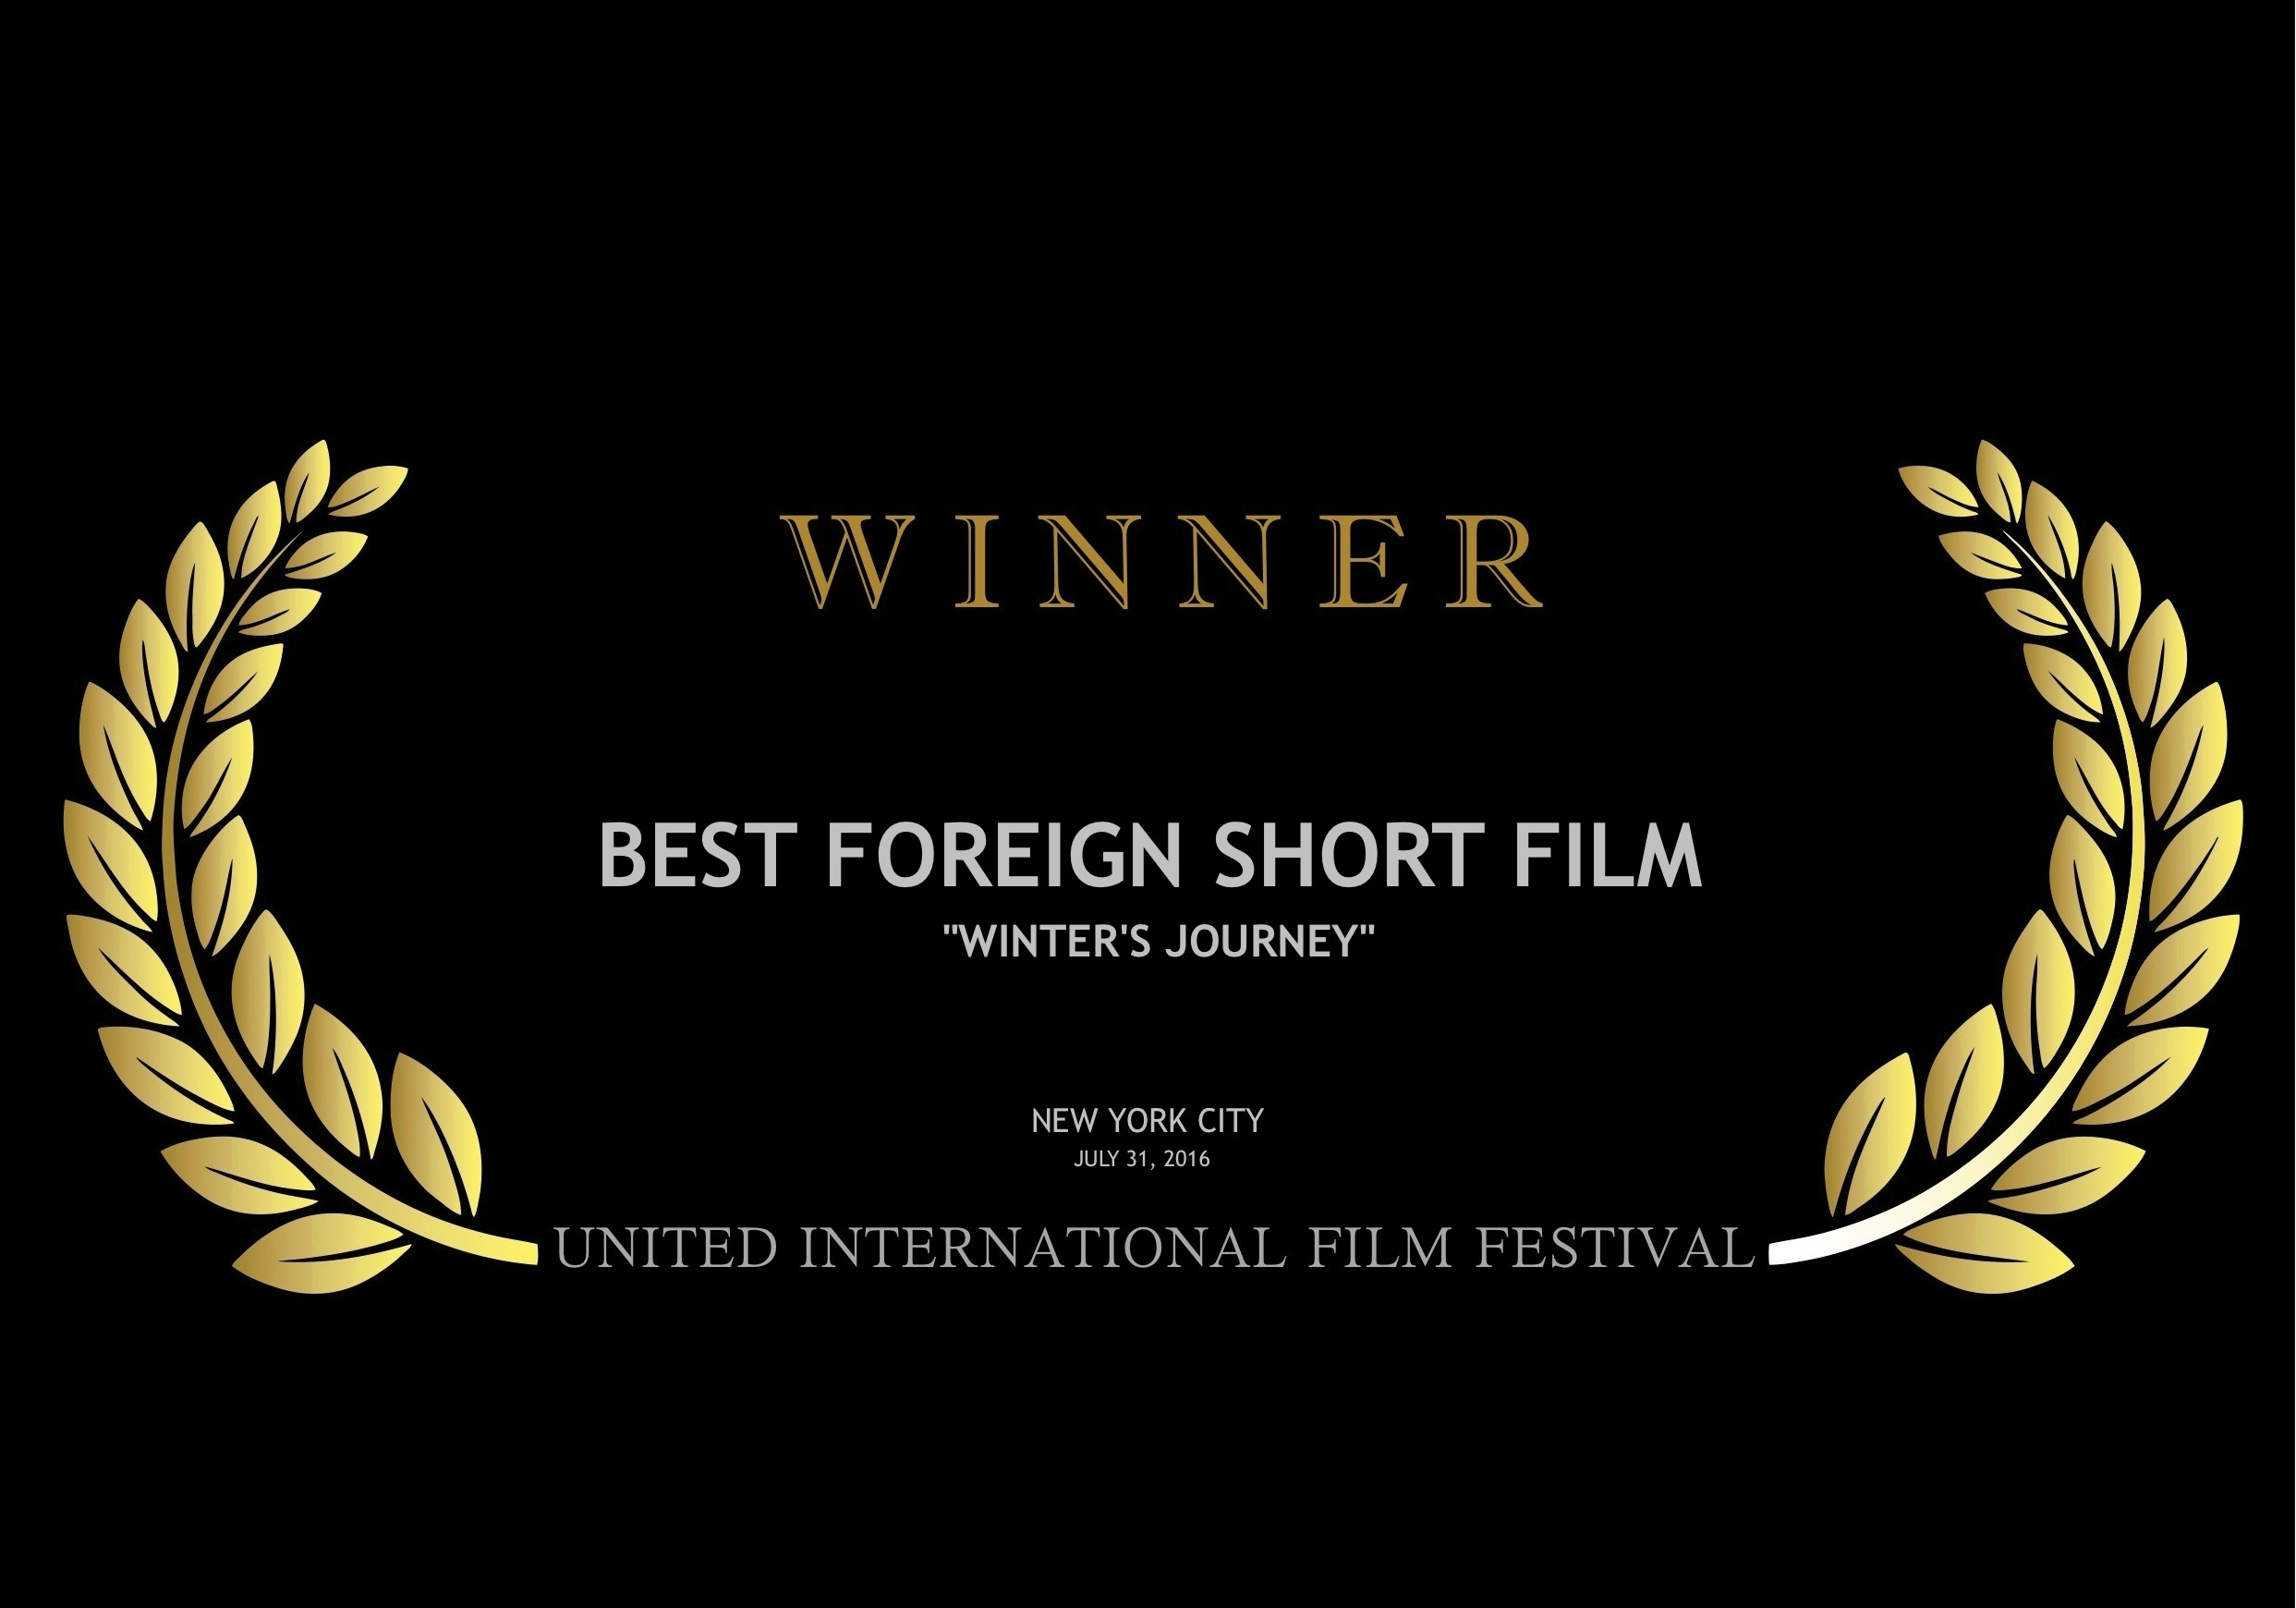 Best foreign short film 2016.jpg